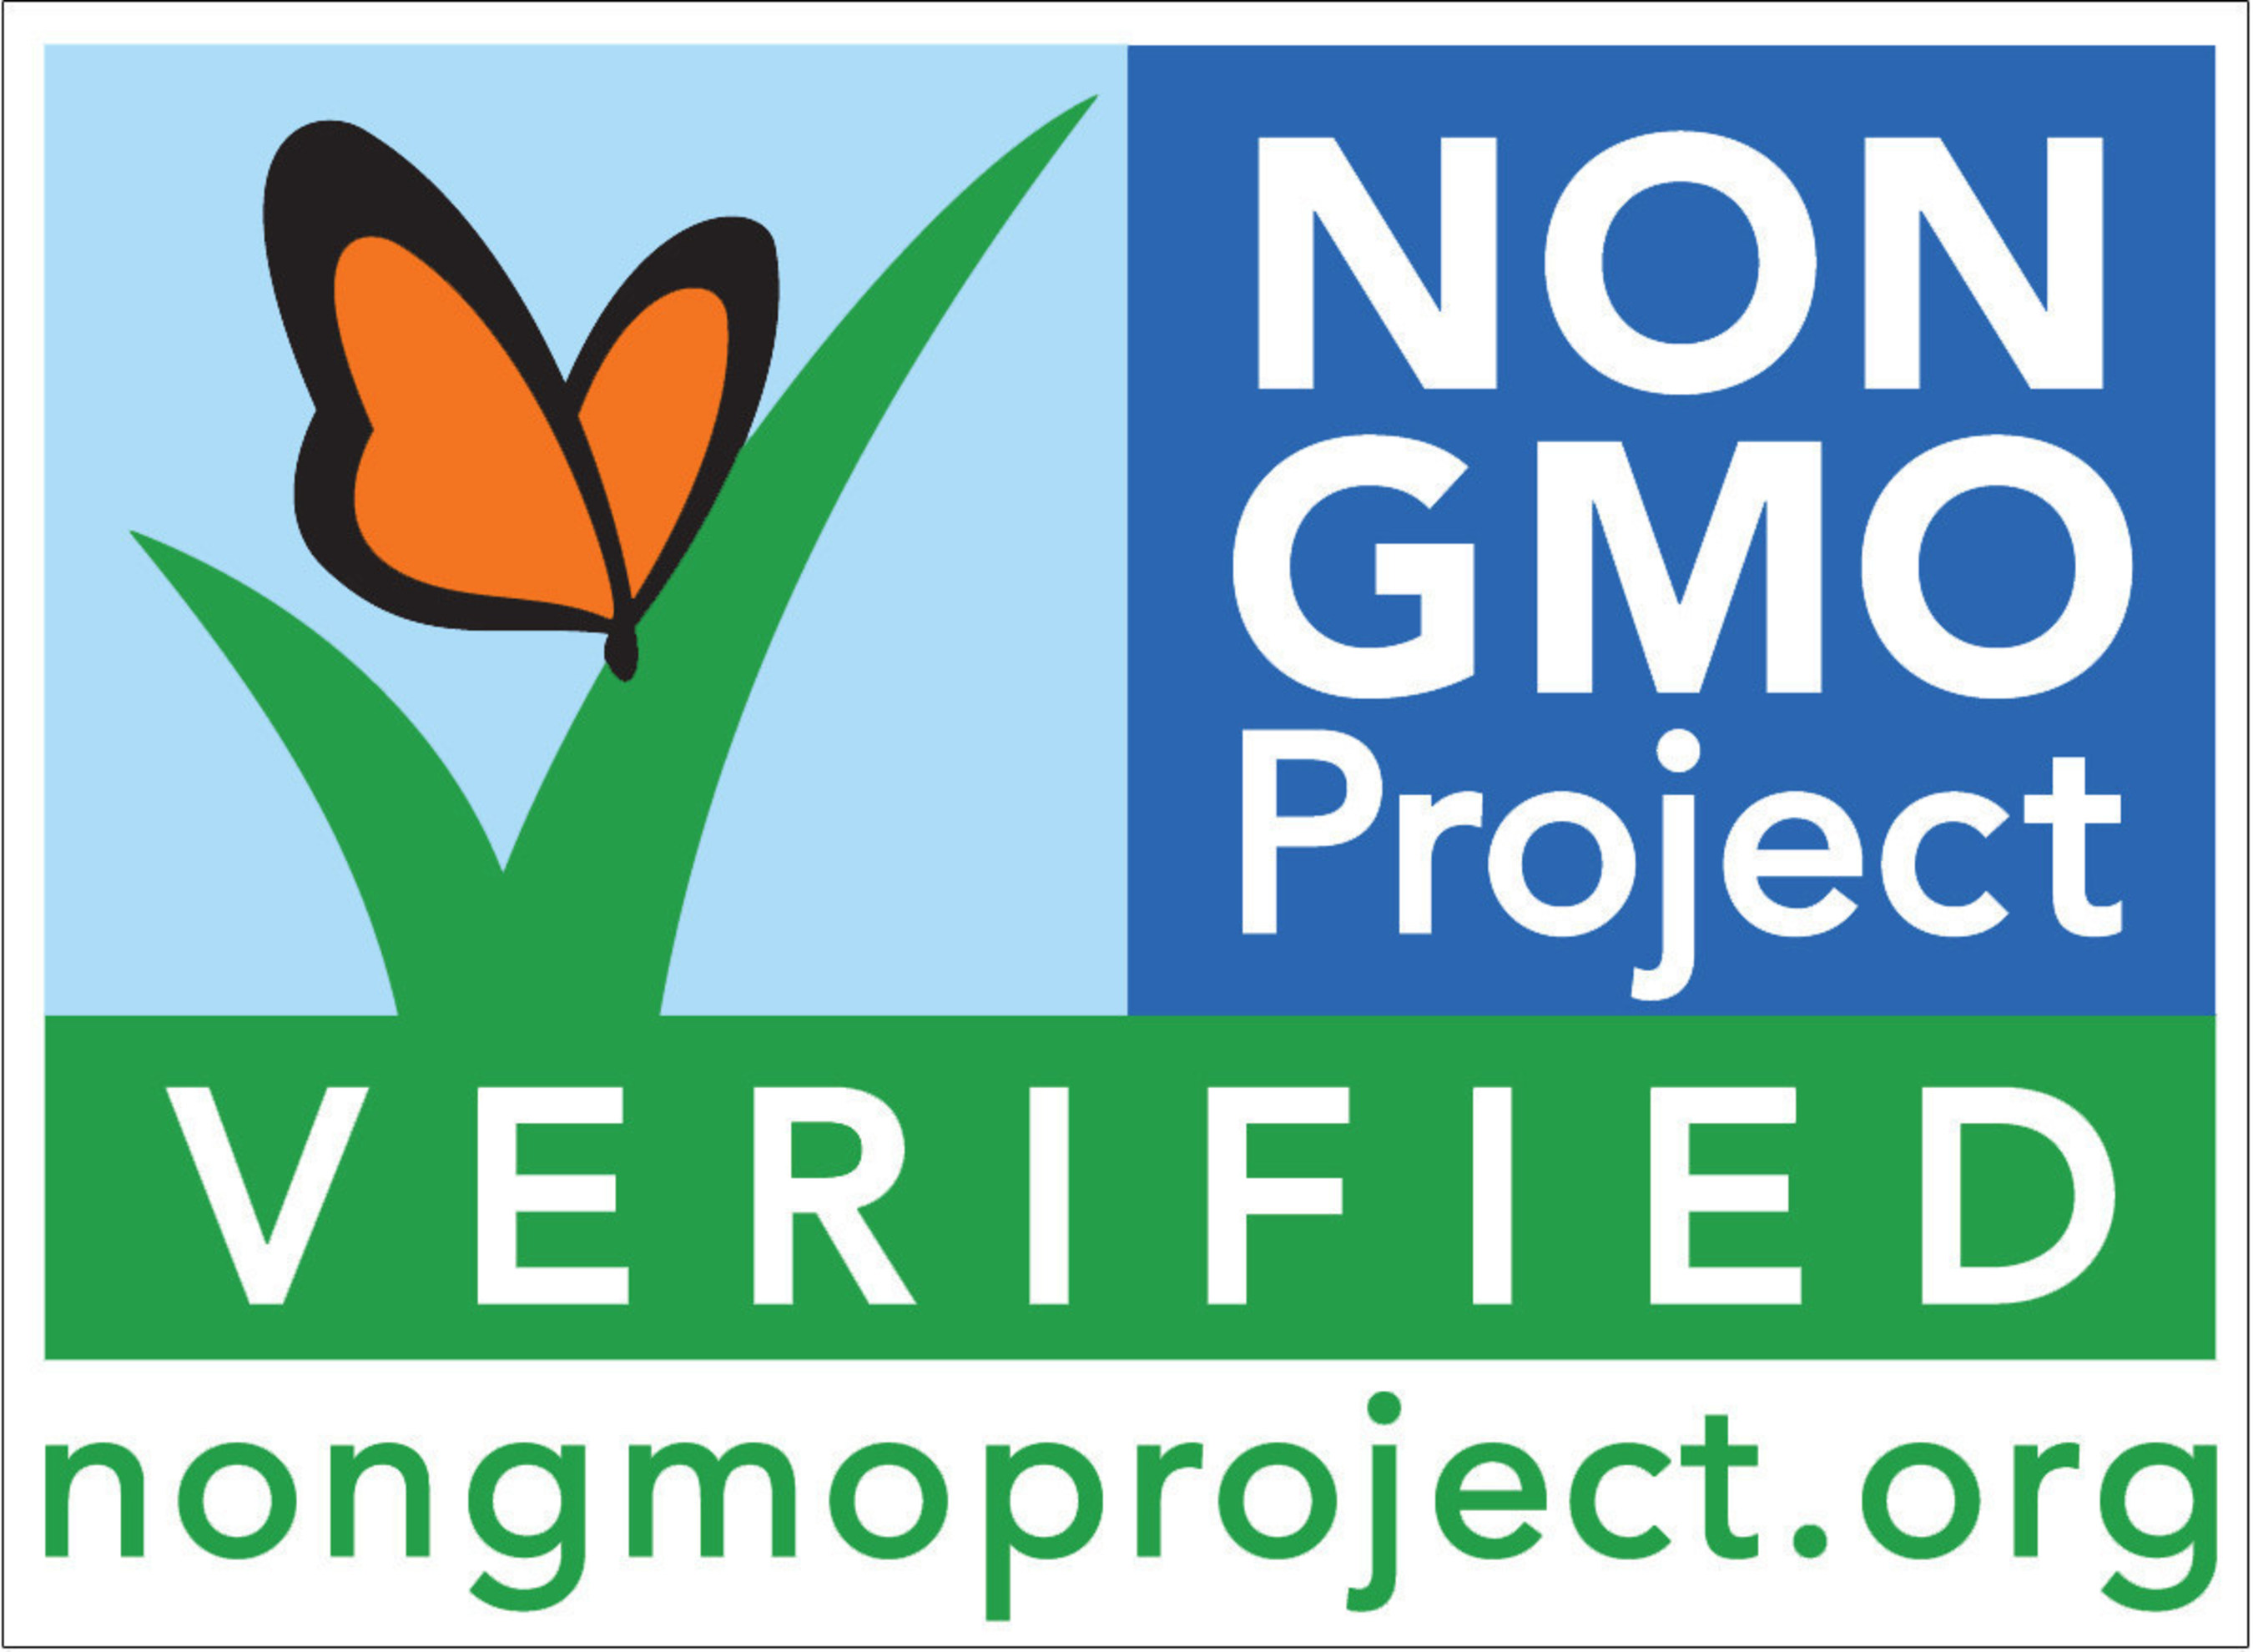 America's #1 Organic Pet Food ORGANIX Leads Category with New Non-GMO Project Verification